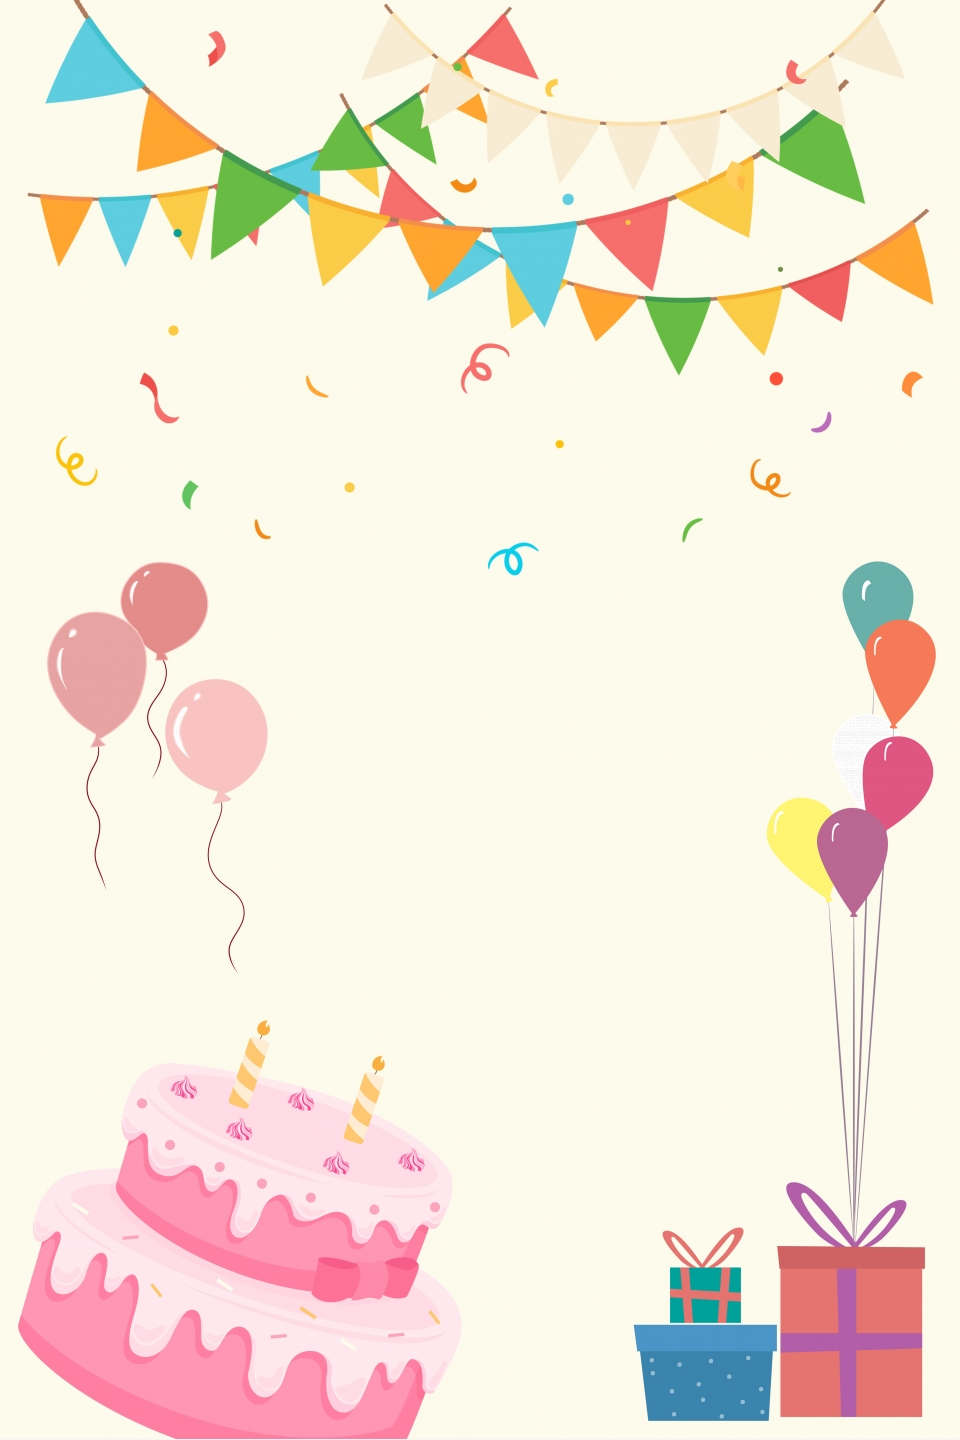 Cartoon Hand Drawn Birthday Party Poster Cartoon Hand Drawn Birthday Background Image For Free Download